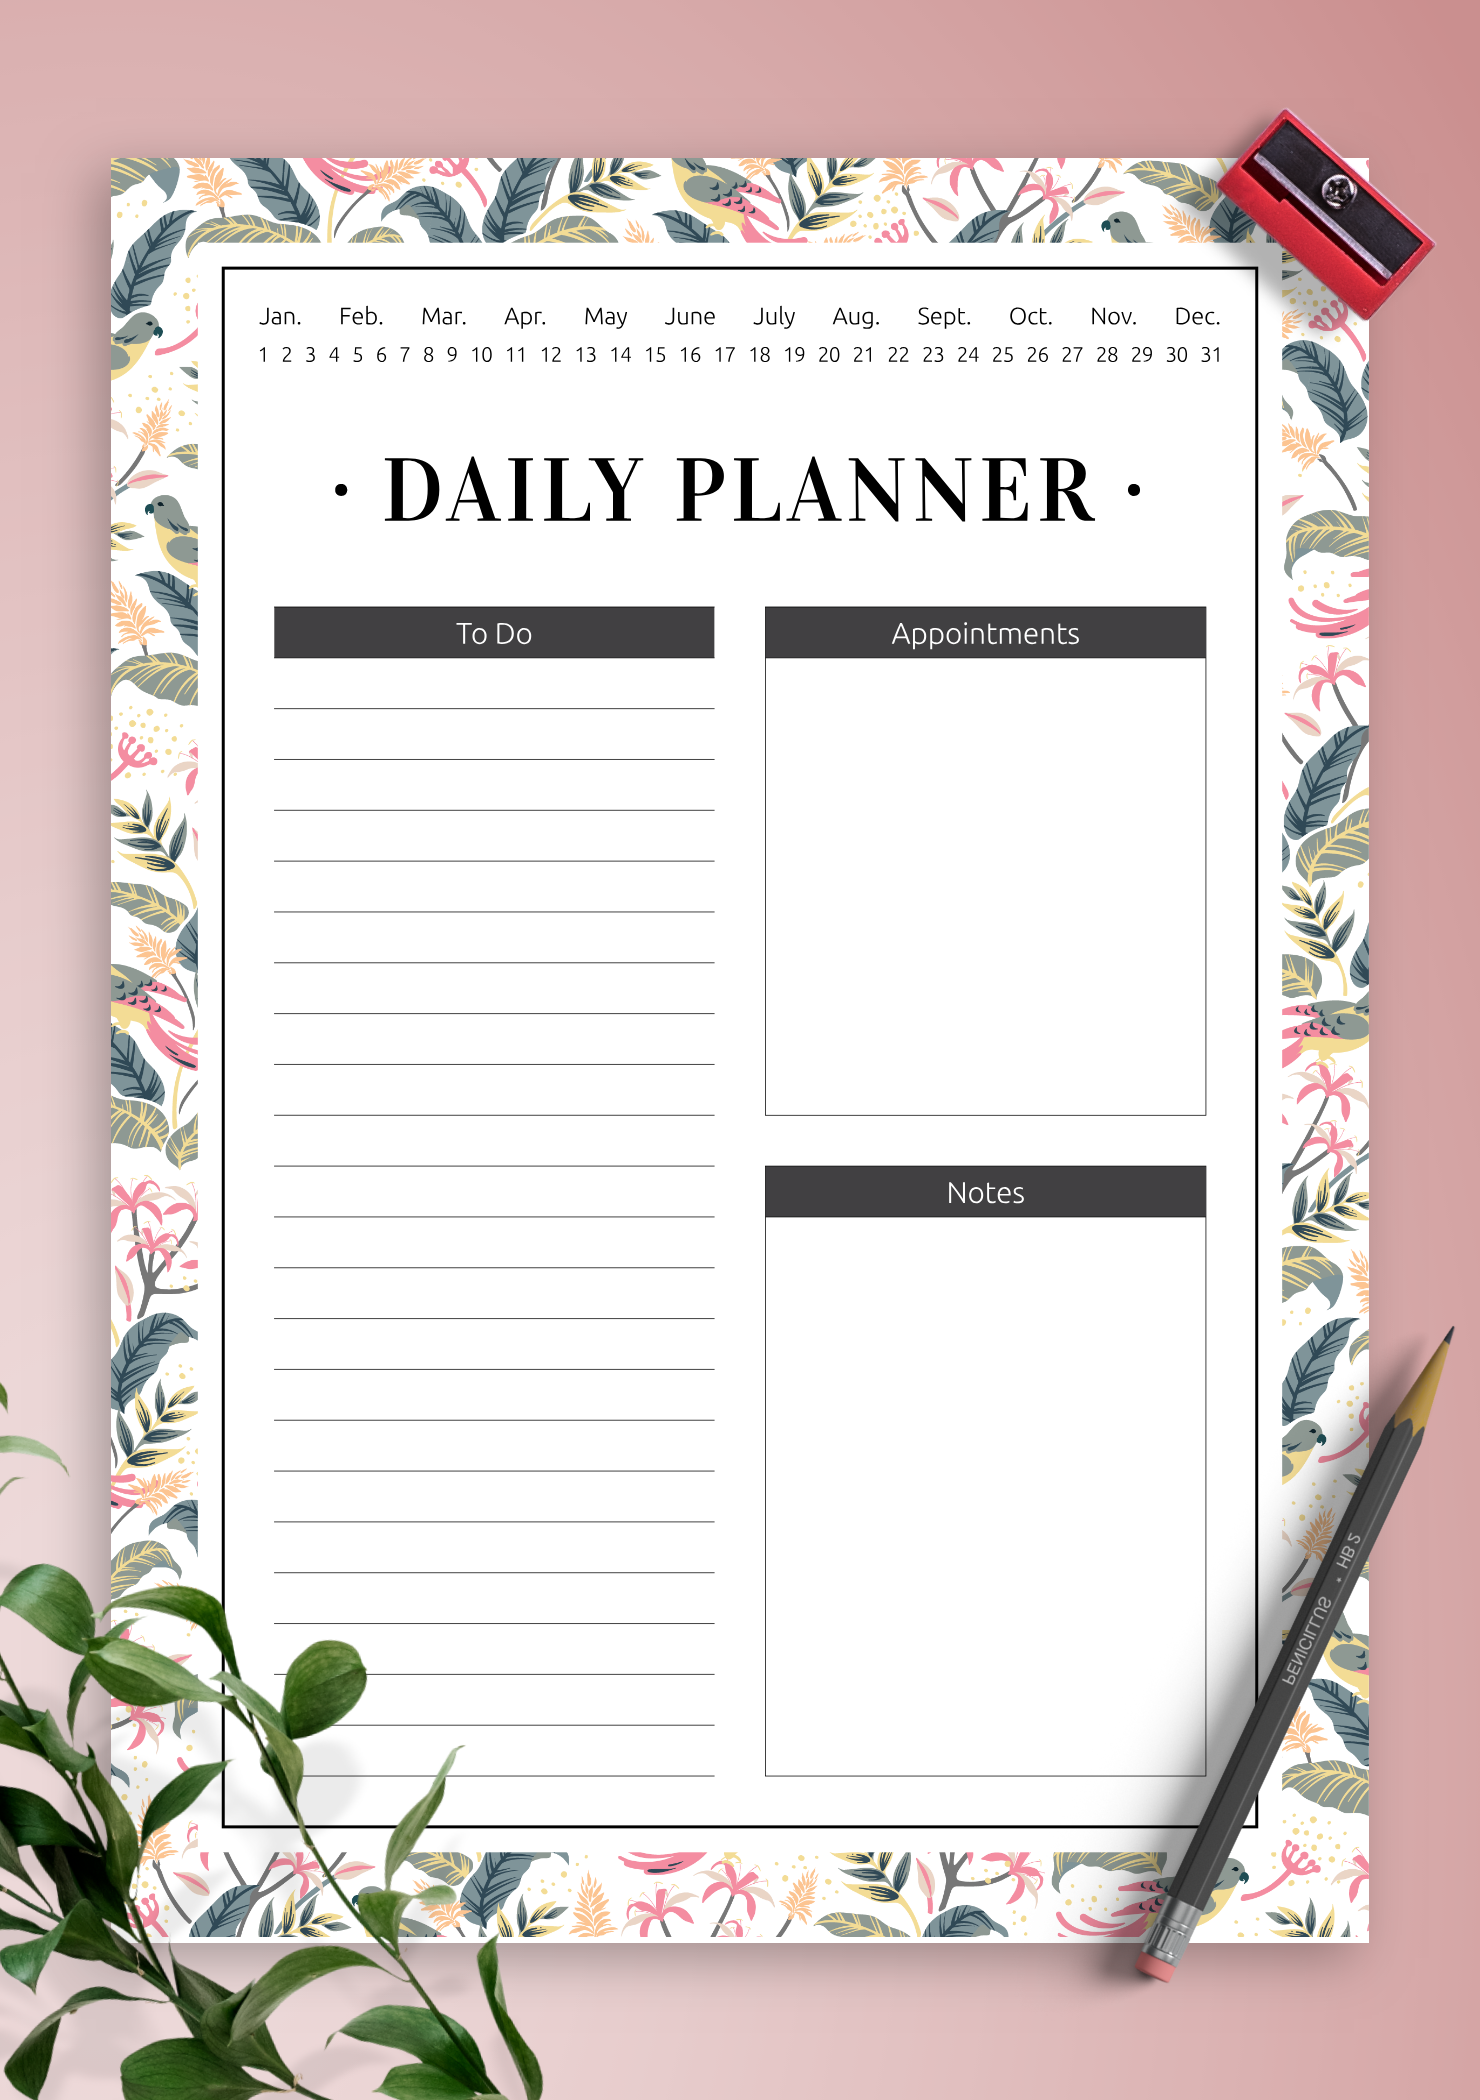 Download Printable Undated Daily Planner with To Do list PDF